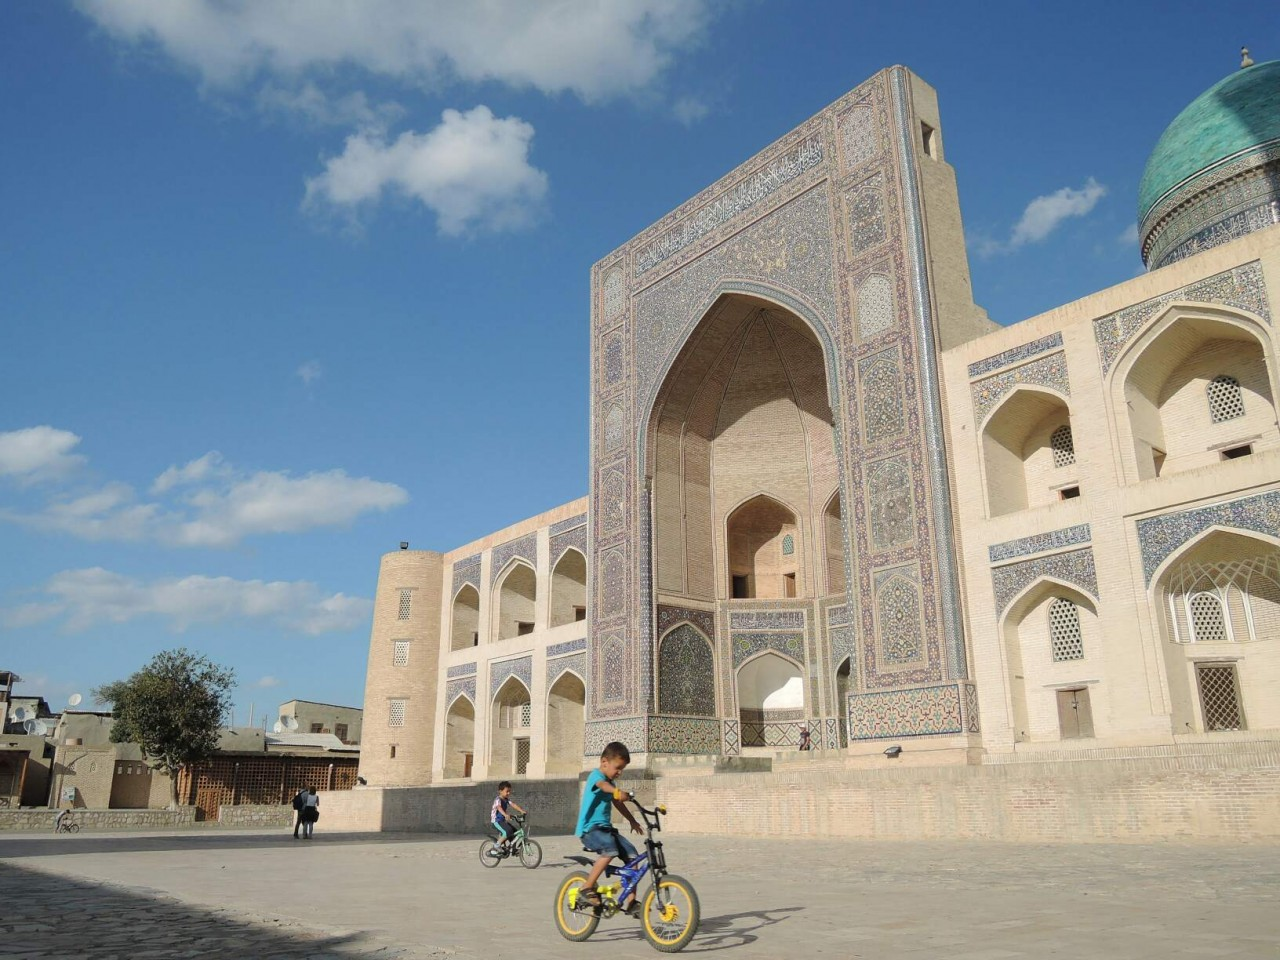 Kids on bycicle in Bukhara